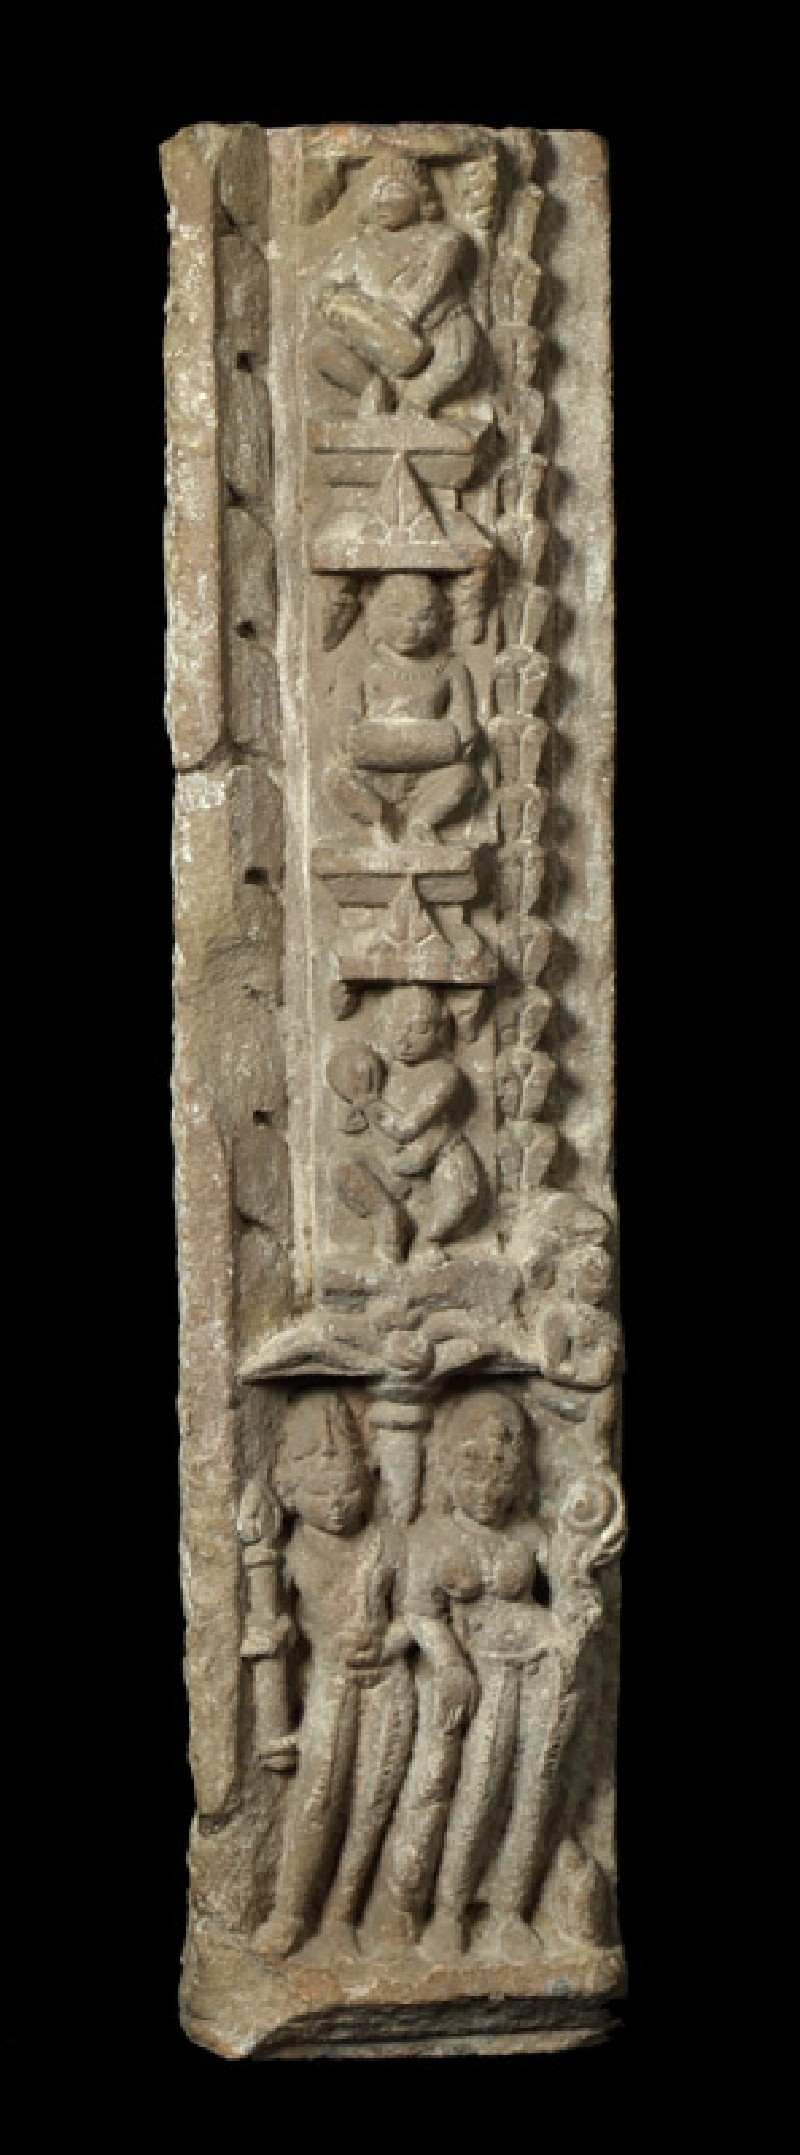 Part of a door jamb with musicians and figures, possibly gods